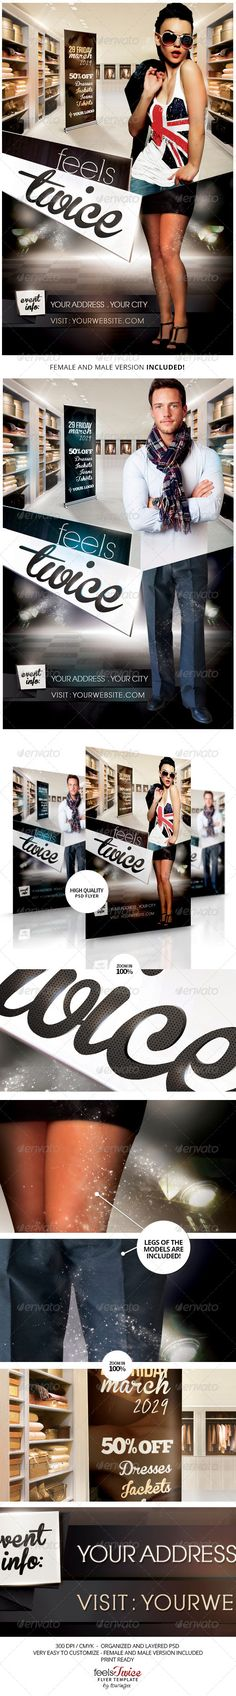 Feels Twice Flyer Template / $6. ***This flyer is perfect for the promotion of Shops/Boutiques, Sales/Promotions, Fashion Shows, New Collections, Events, Club Parties or Whatever you Want!.***